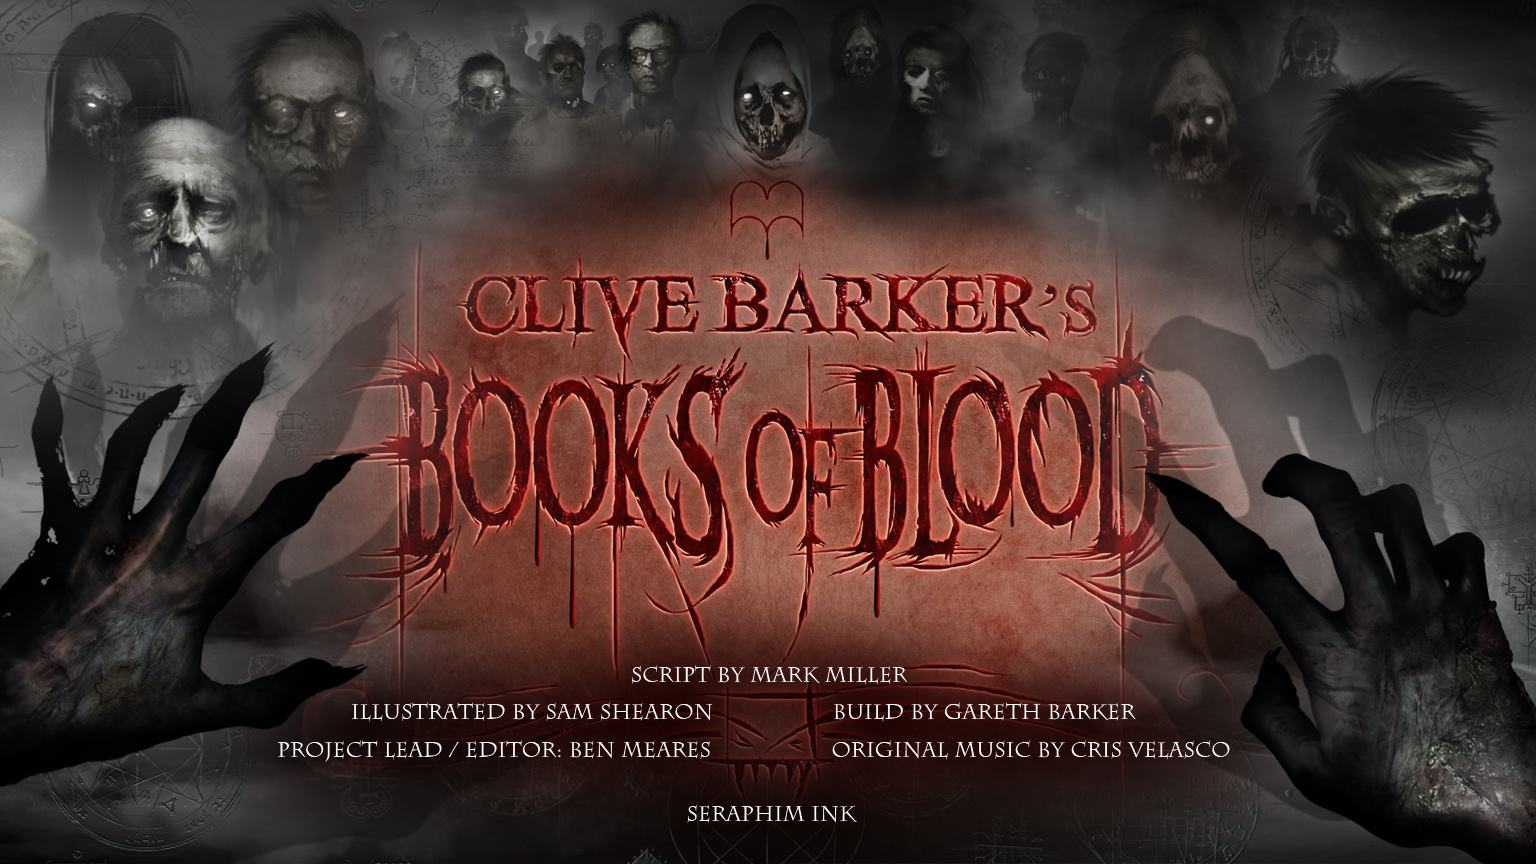 blood books clive barker horror madefire stories volume motion clivebarkercast debuts app deviantart coming classic